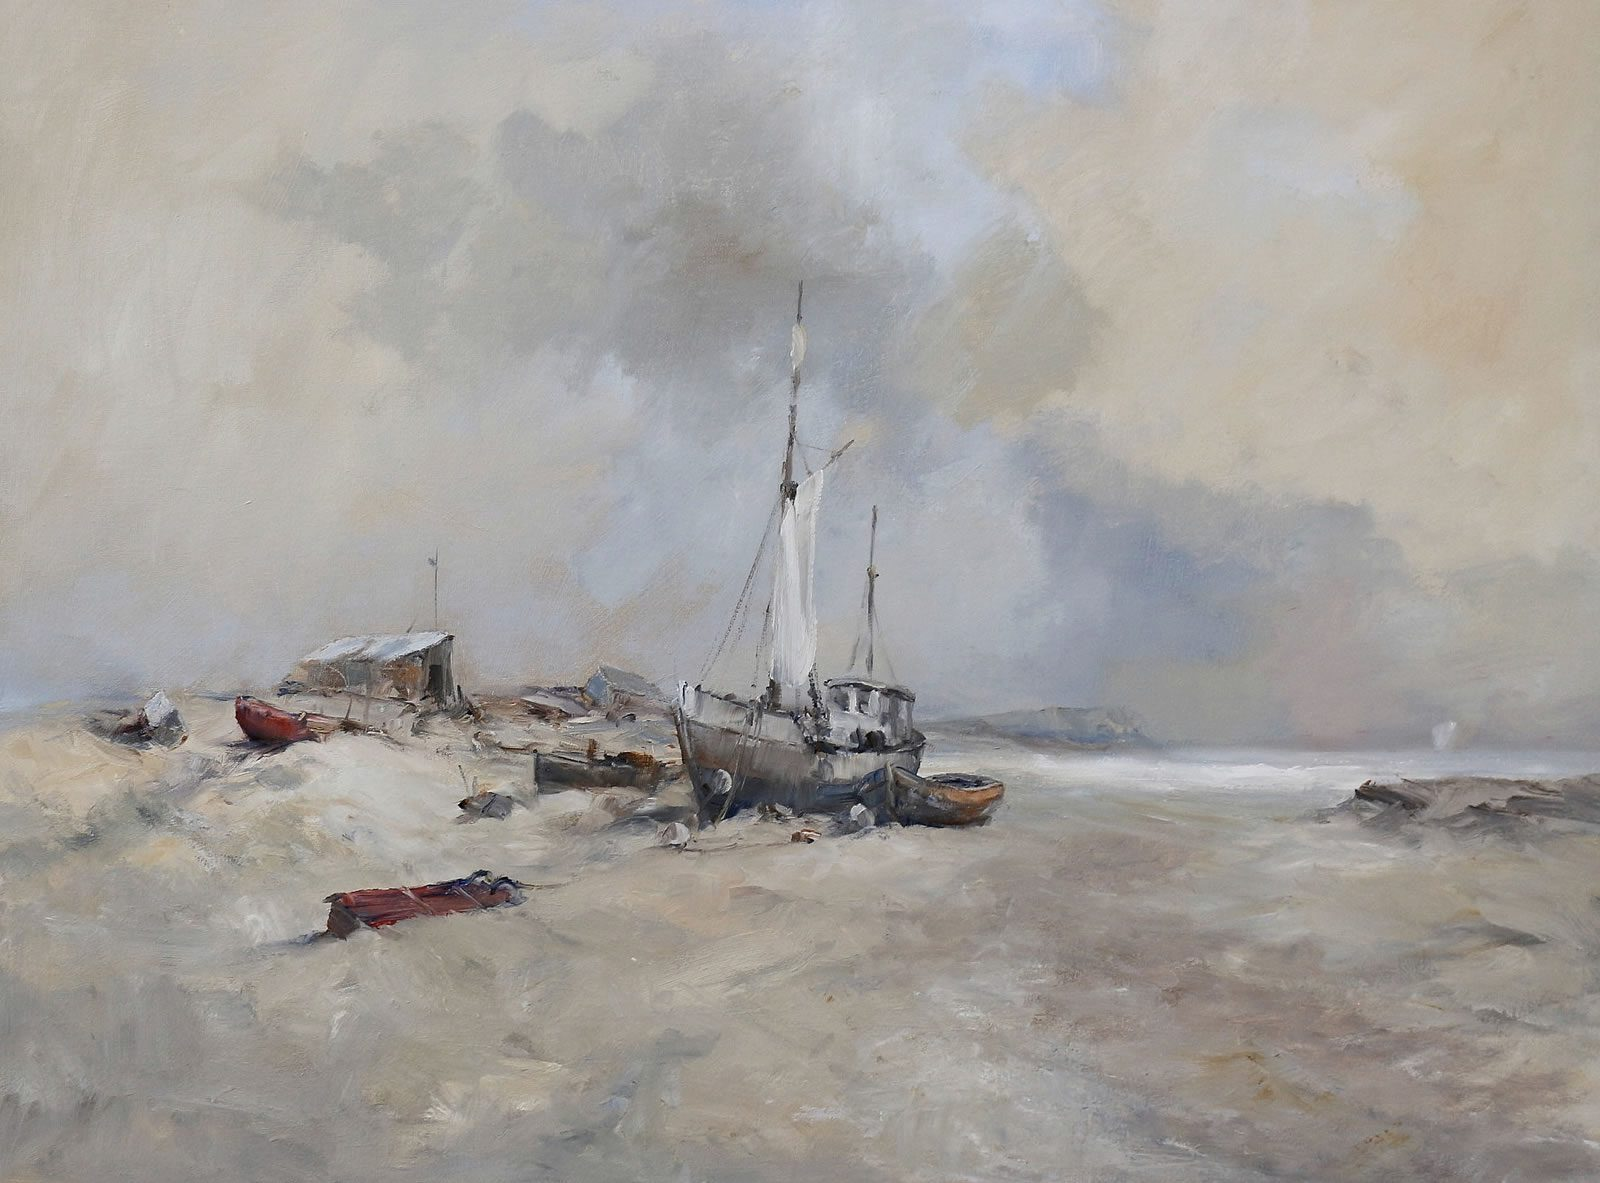 Boats on shore at Suffolk Sands in an oil painting by Stewart Taylor